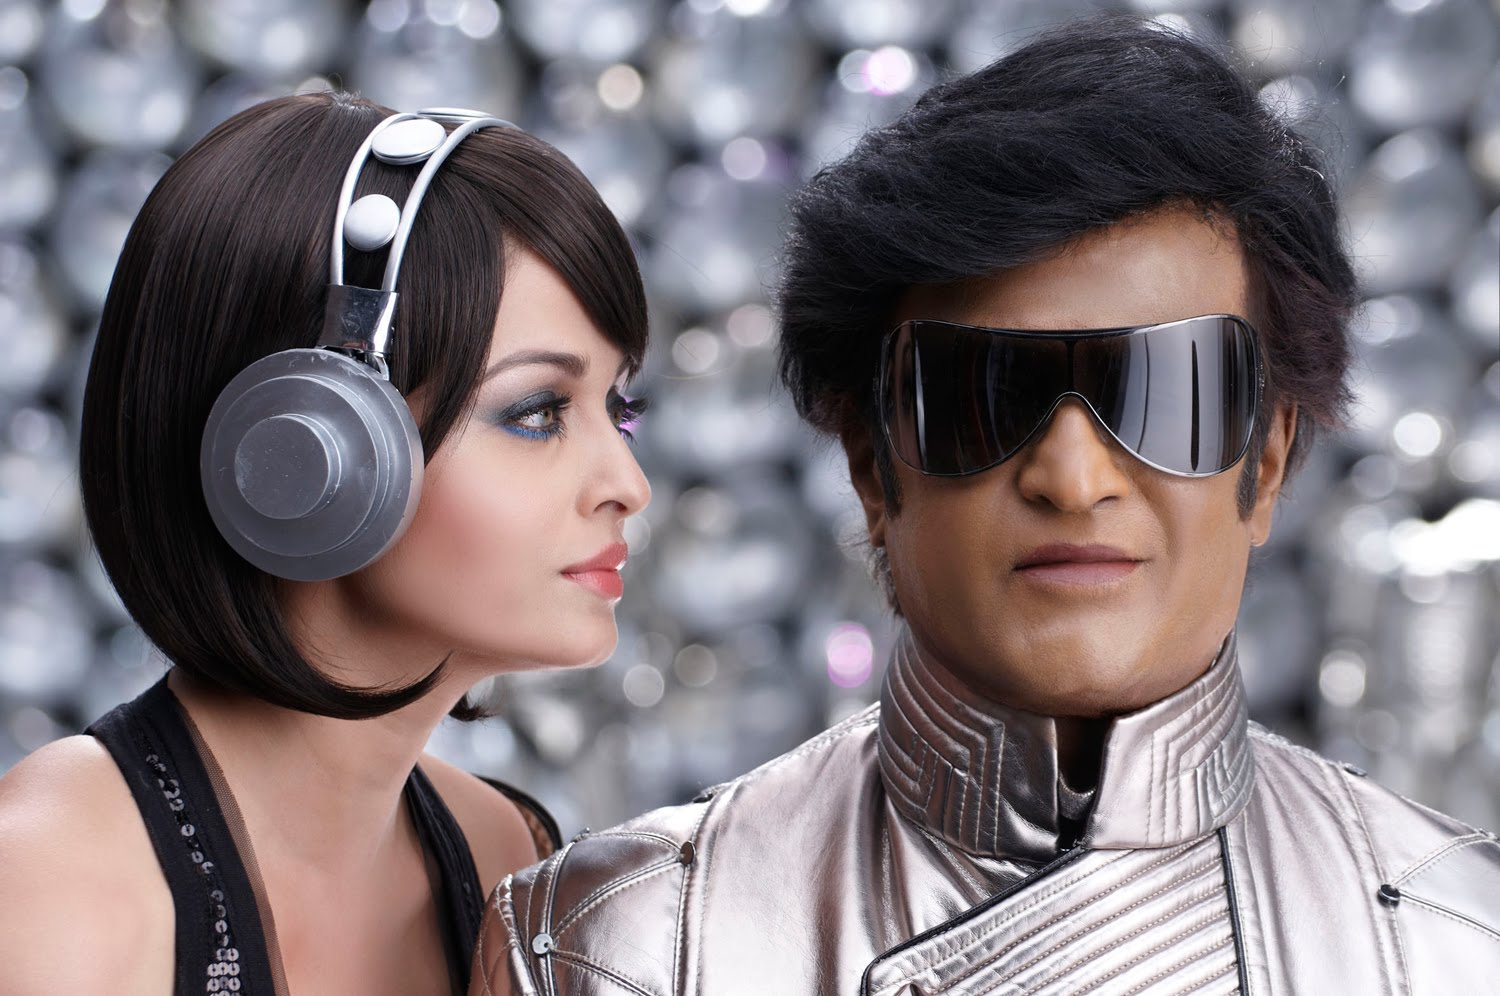 Image result for robot film rajni aishwarya